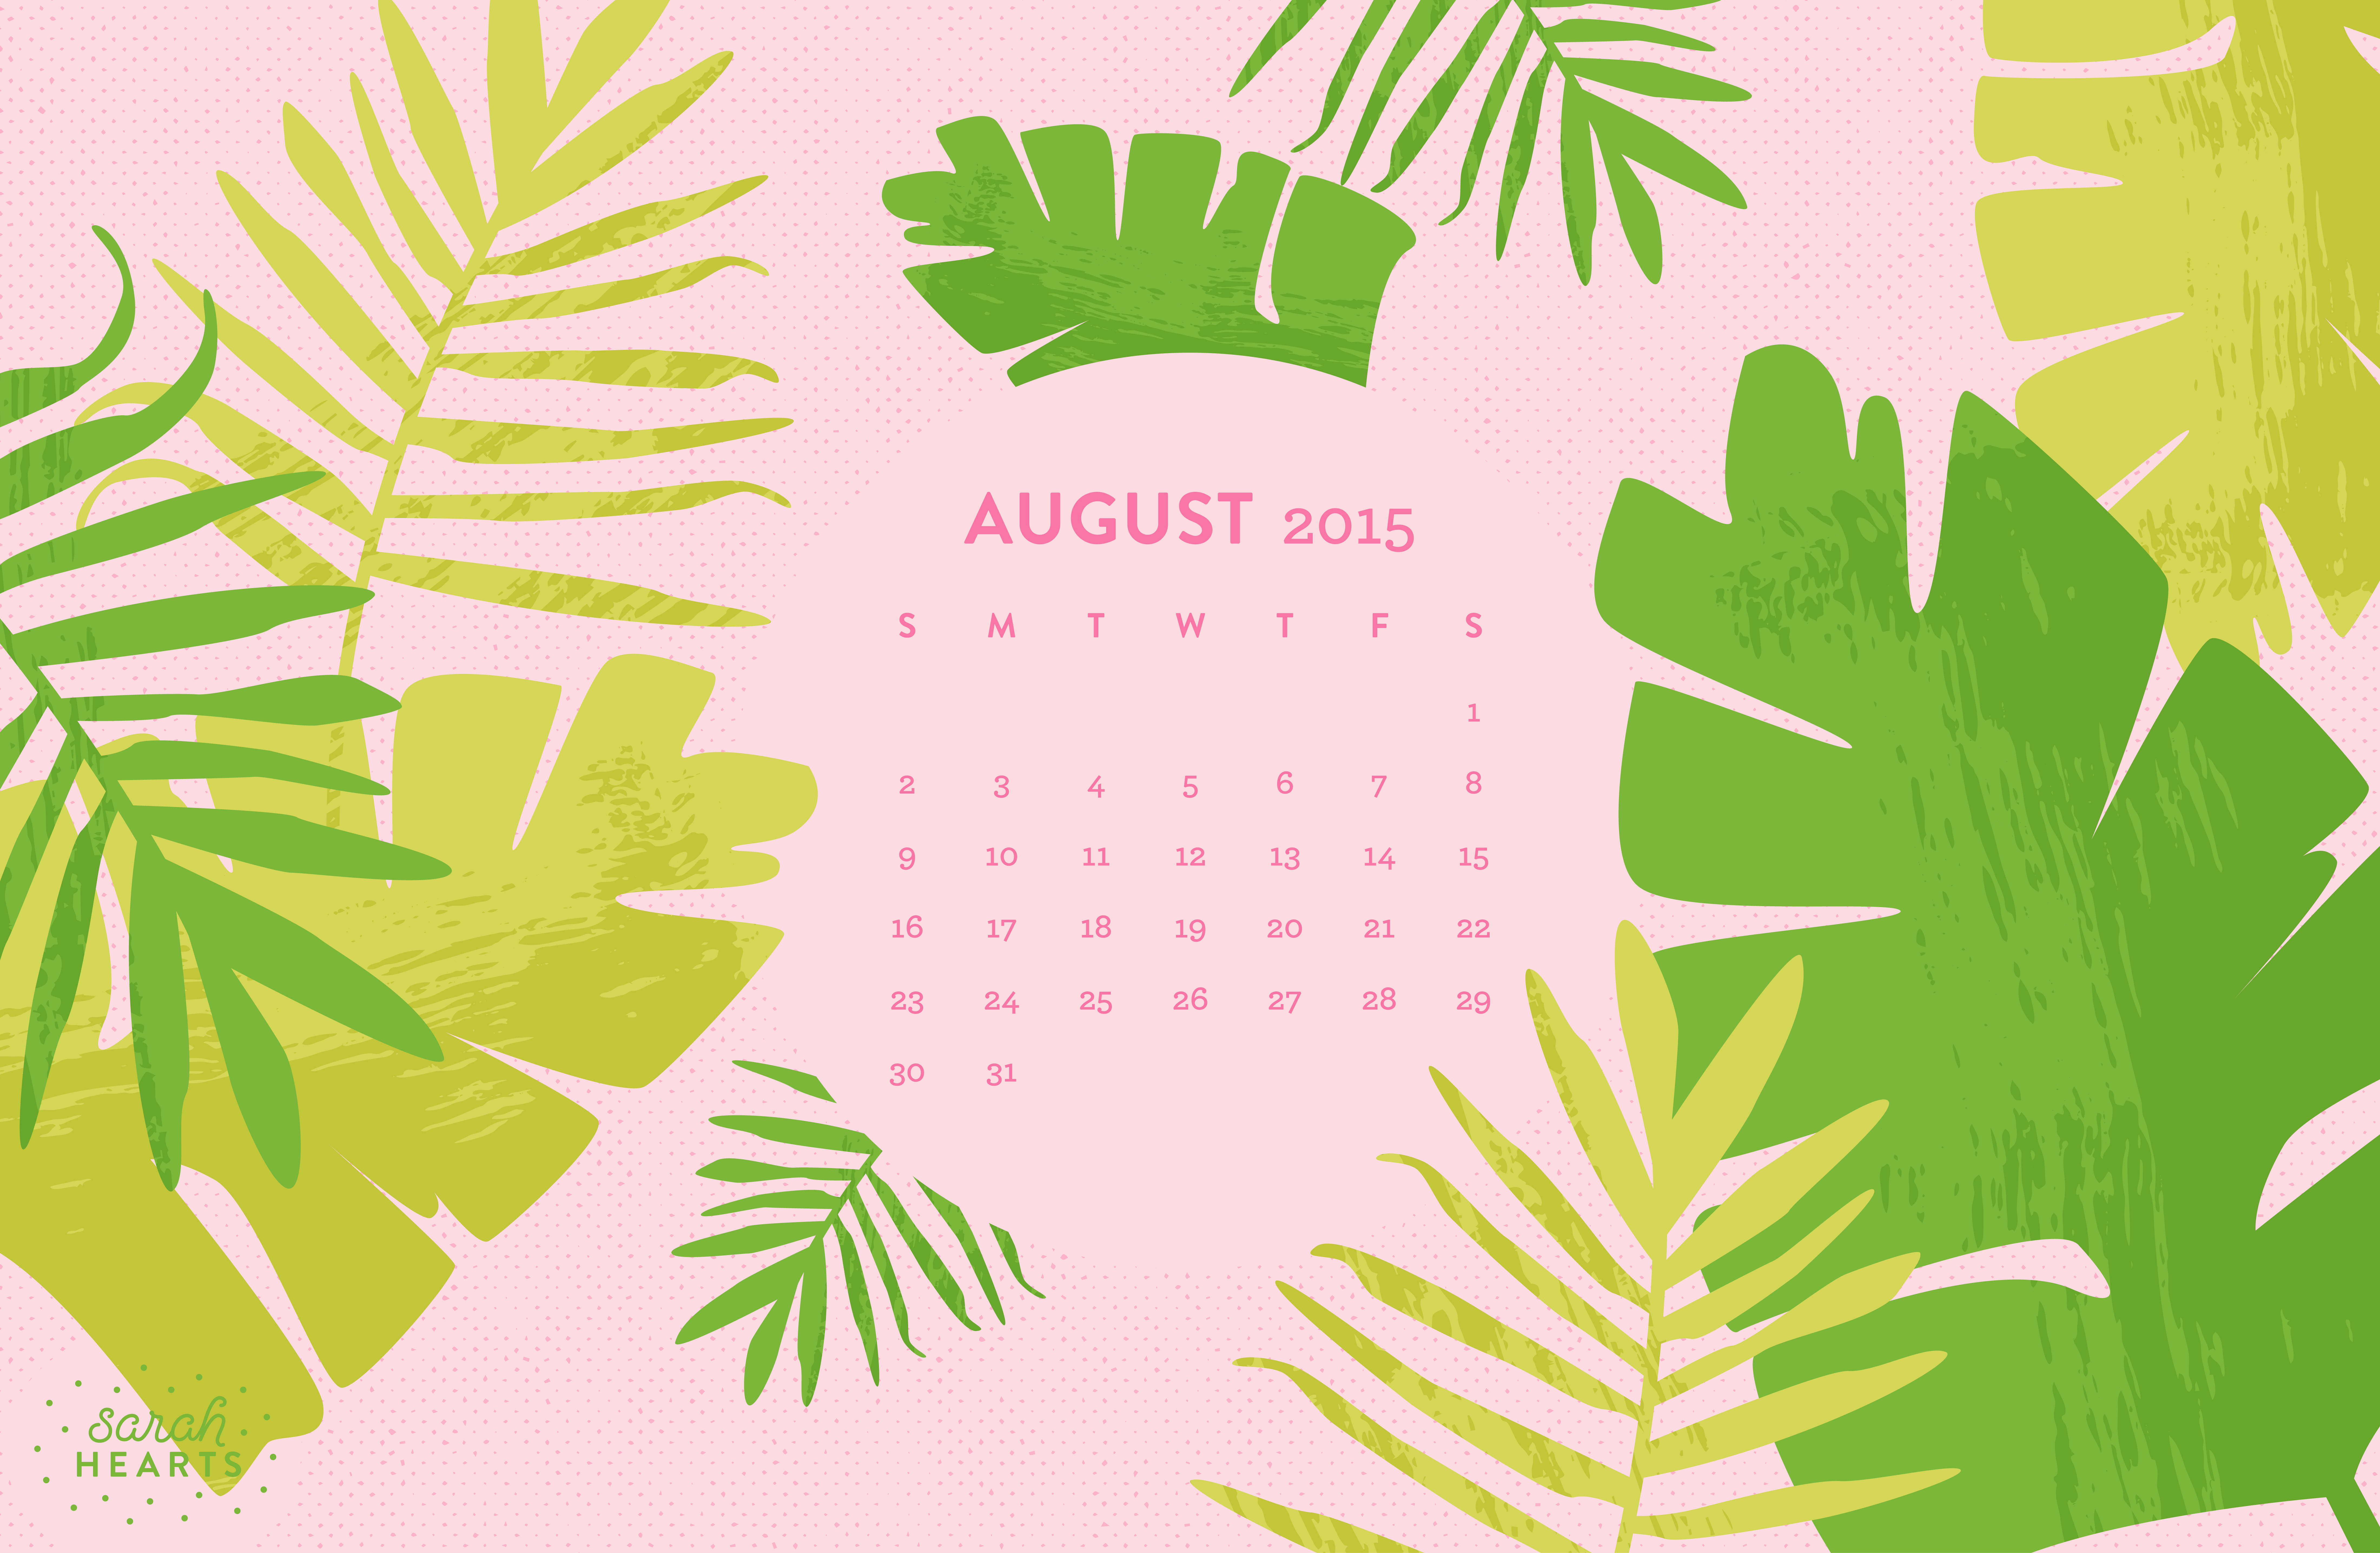 August 2015 Calendar Wallpaper   Sarah Hearts 8800x5744